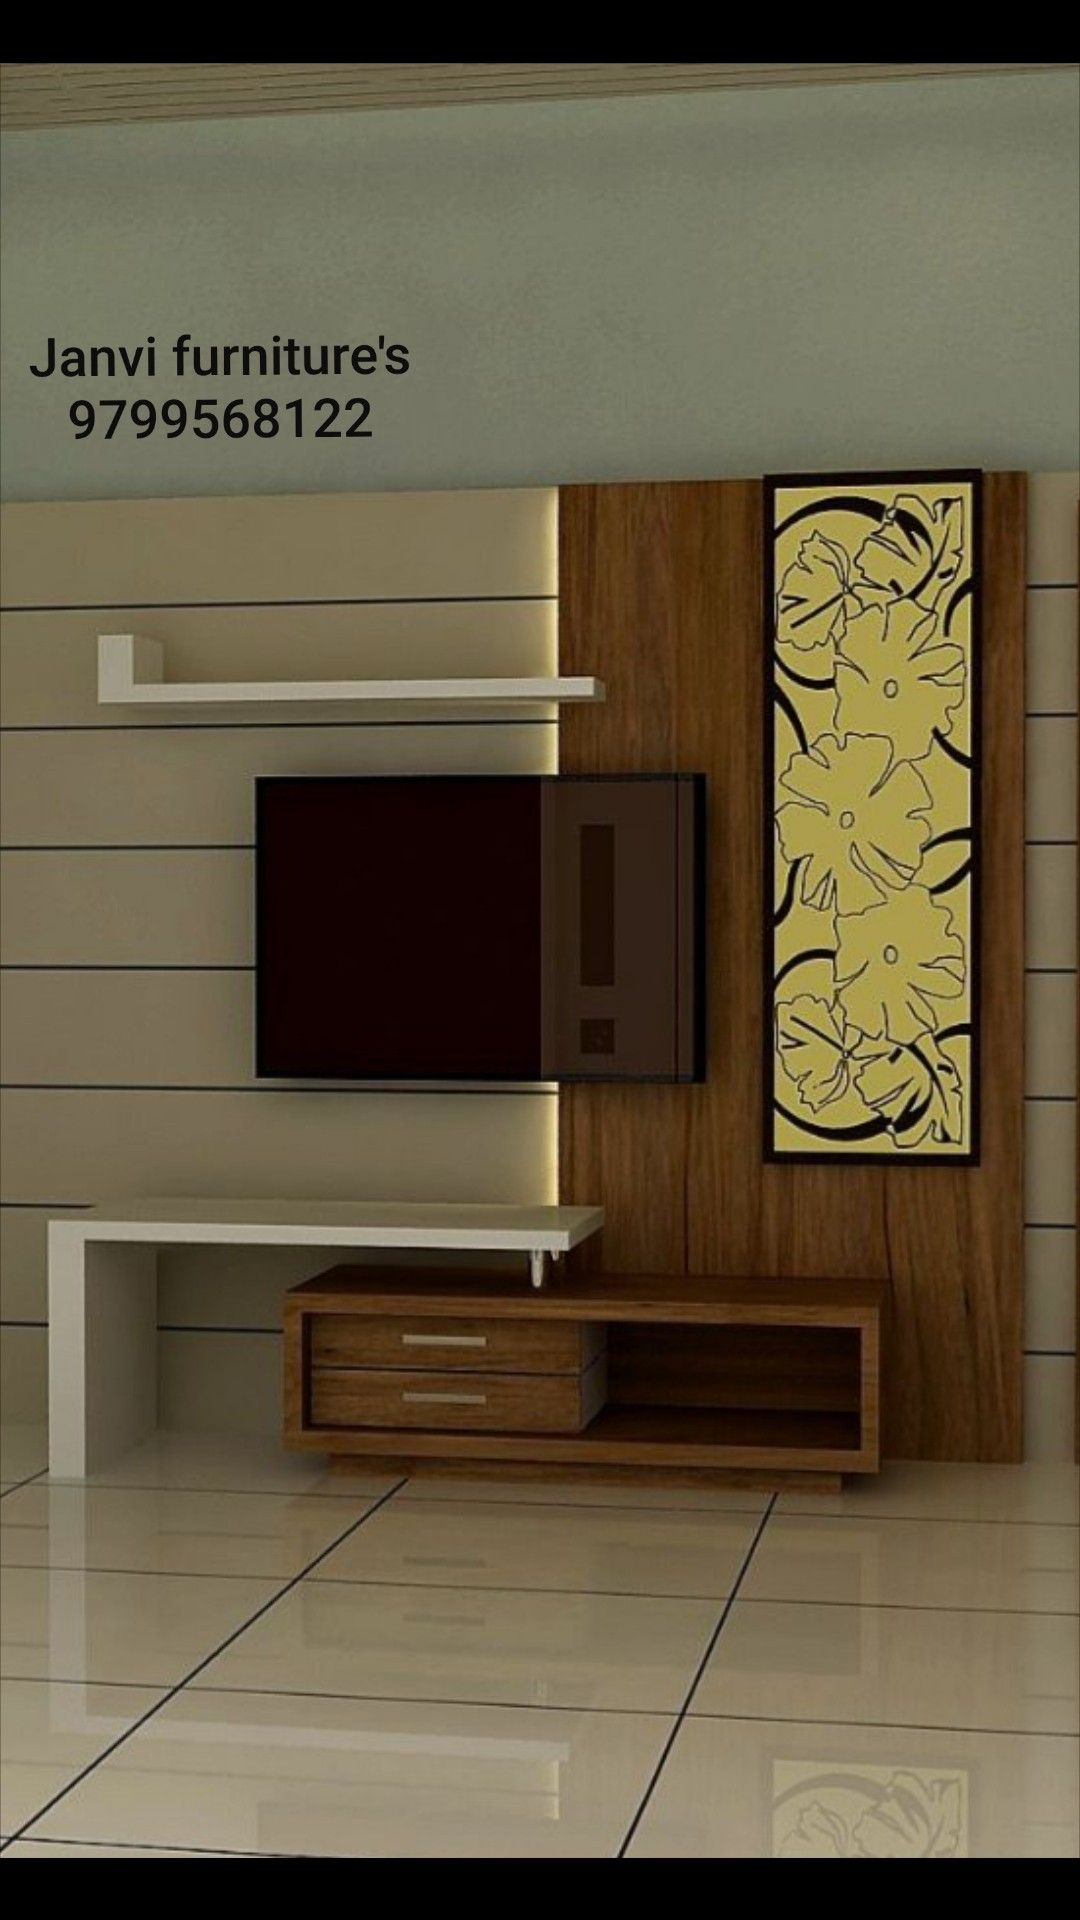 Lcd Panel Design Tv Unit Design Tv: Pin By Janvi Furniture's Kekeri 9799568122 On Janvi